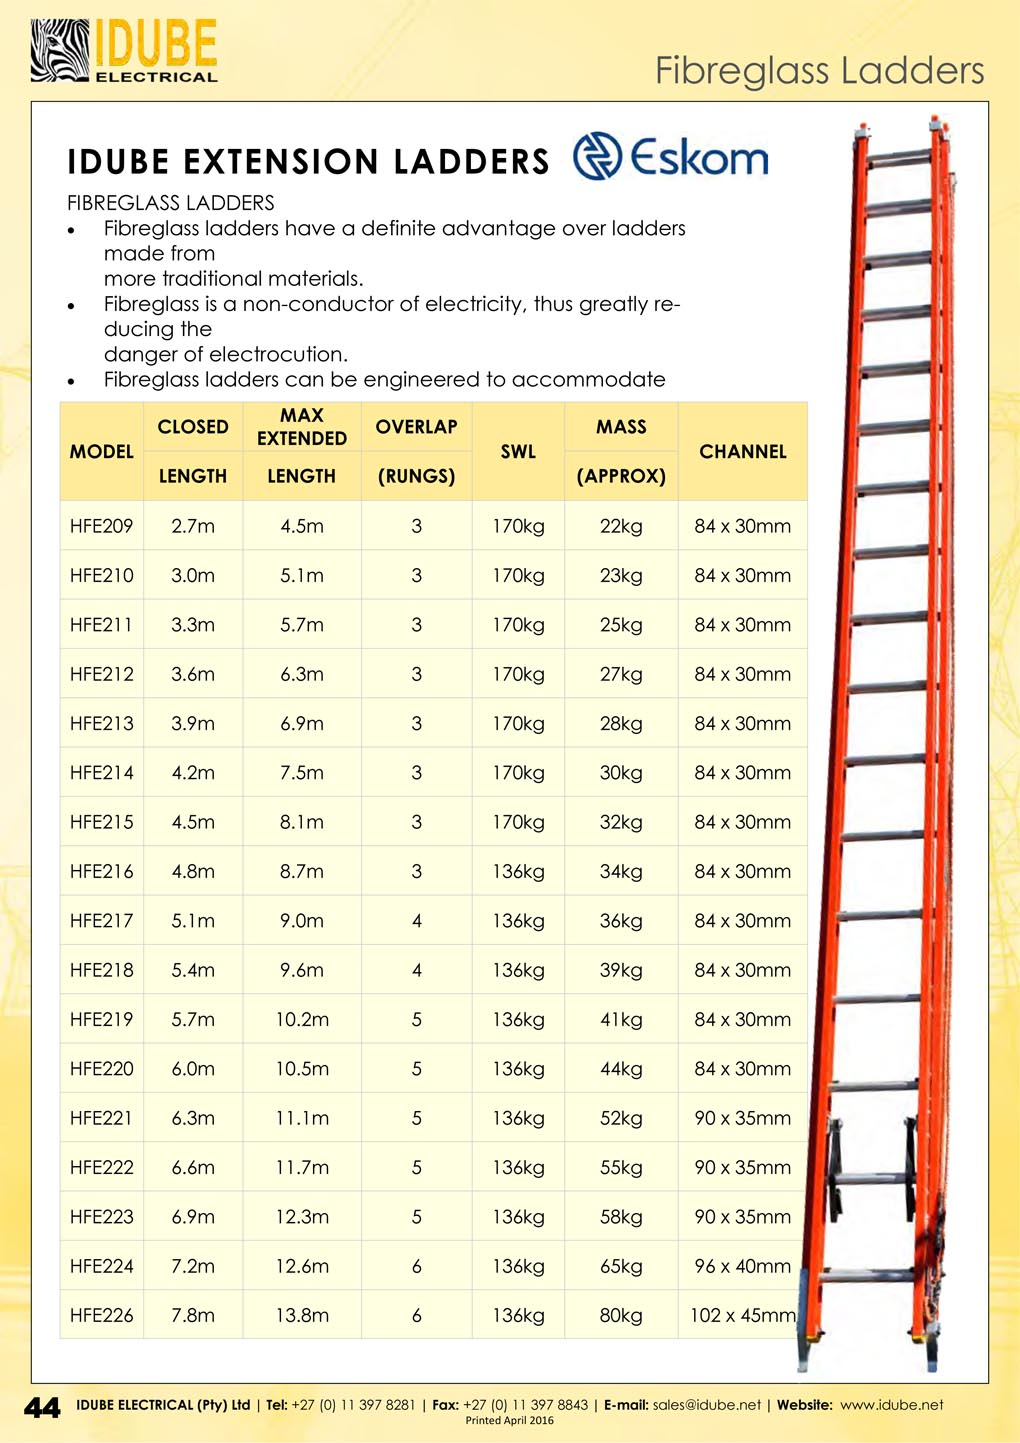 Fibreglass Extension Ladders (Eskom) - 1020 x 1443